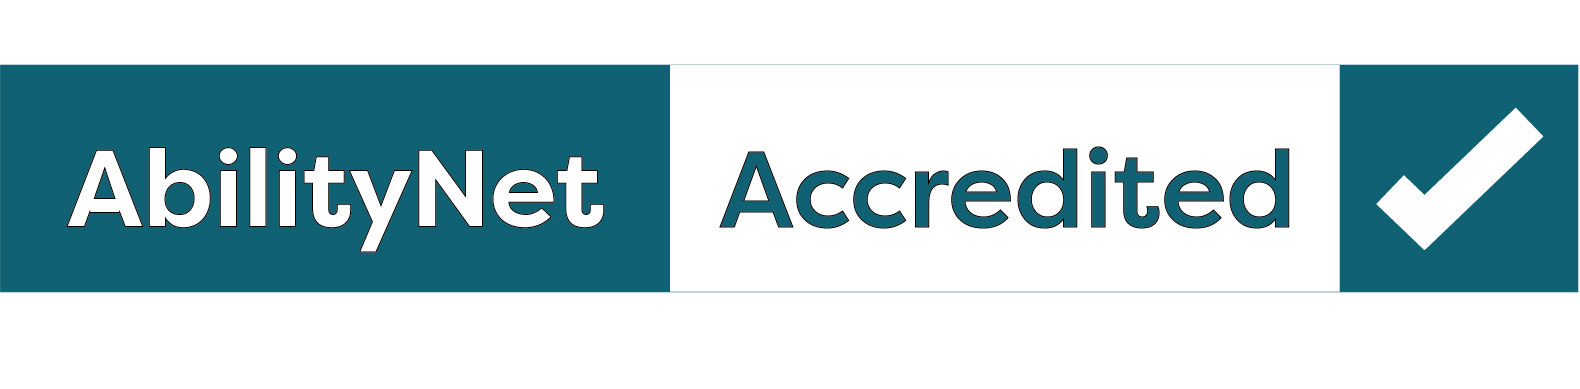 AbilityNet Accredited